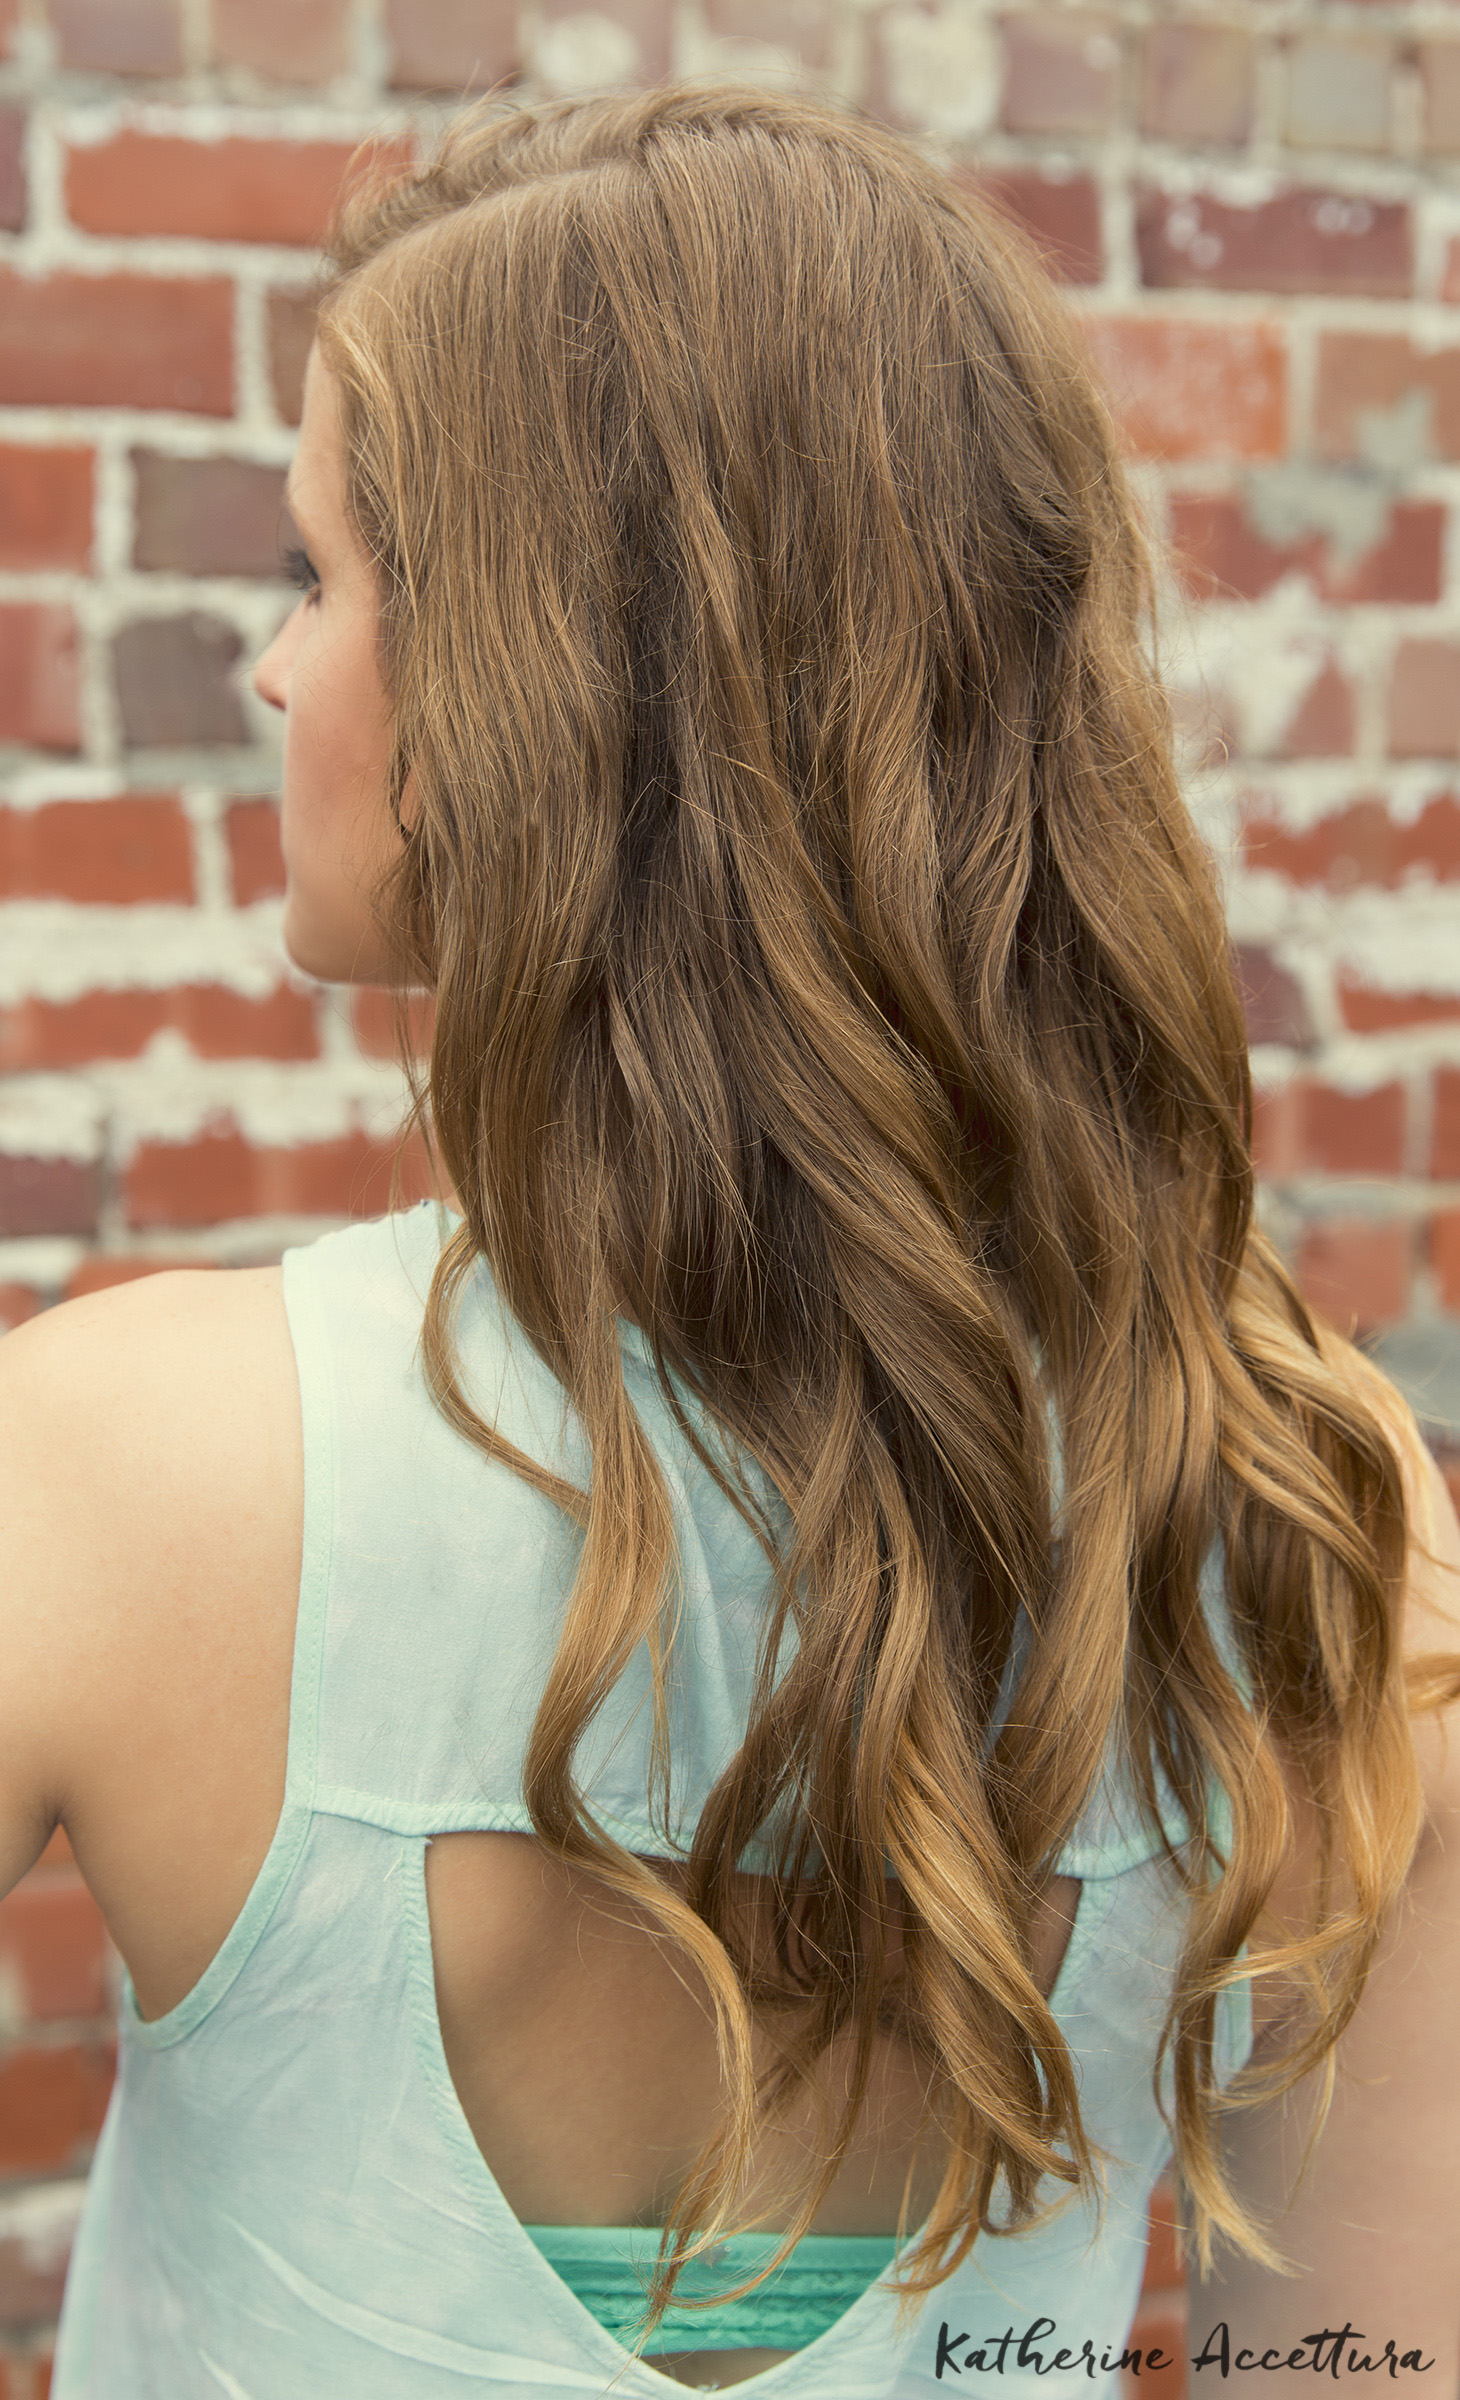 Mint Top + Curly Hairstyle